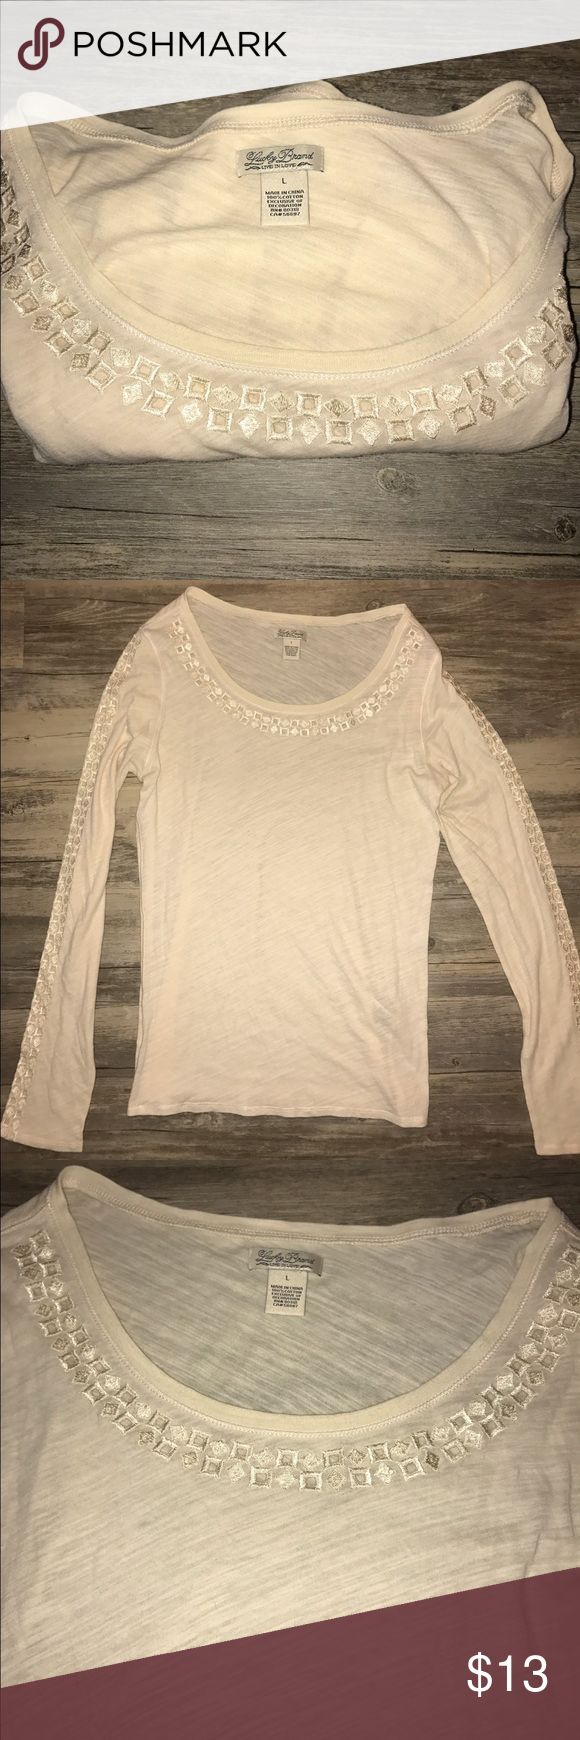 NWOT/WOMEN'S LUCKY BRAND LONG SLEEVE EYELIT TSHIRT NWOT/WOMEN'S LUCKY BRAND CREAM LONG SLEEVE EYELIT TSHIRT! SZ: L! BRAND NEW‼️ AS IS‼️ NO TRADES‼️ Lucky Brand Tops Tees - Long Sleeve